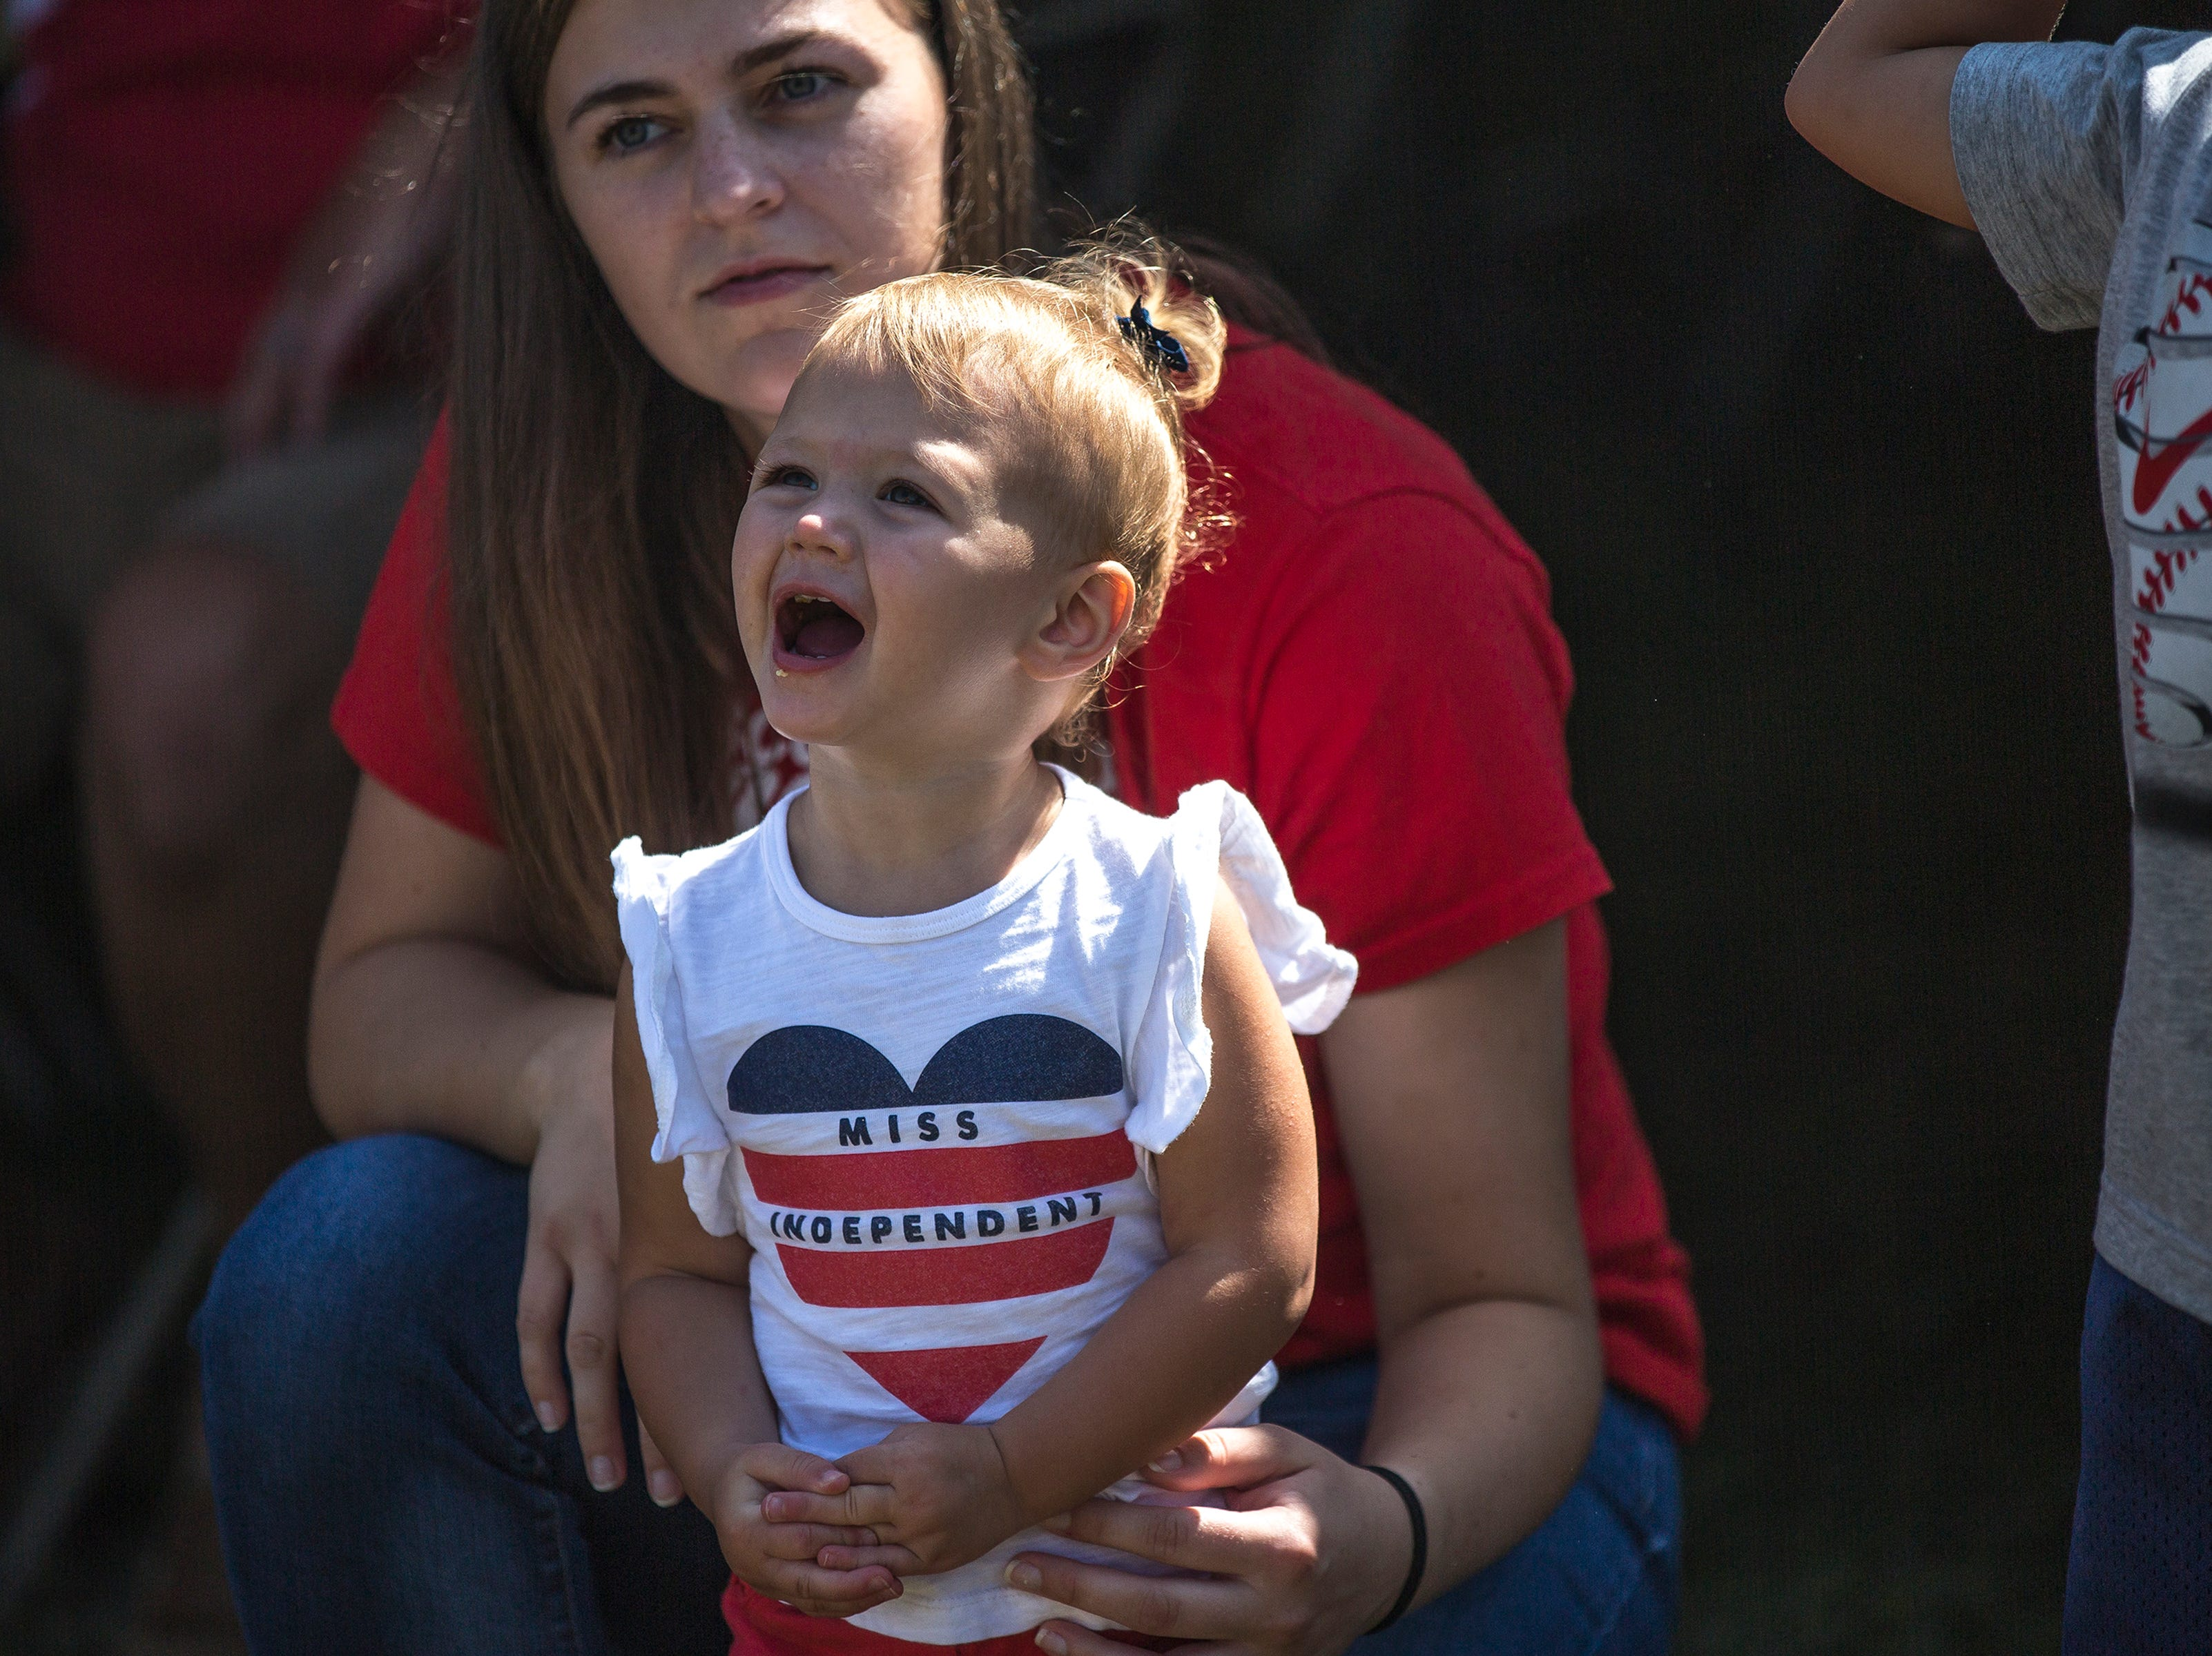 A girl reacts to a helicopter flyover during Celebrate Plover at Lake Pacawa Park in Plover, Wis., July 28, 2018.